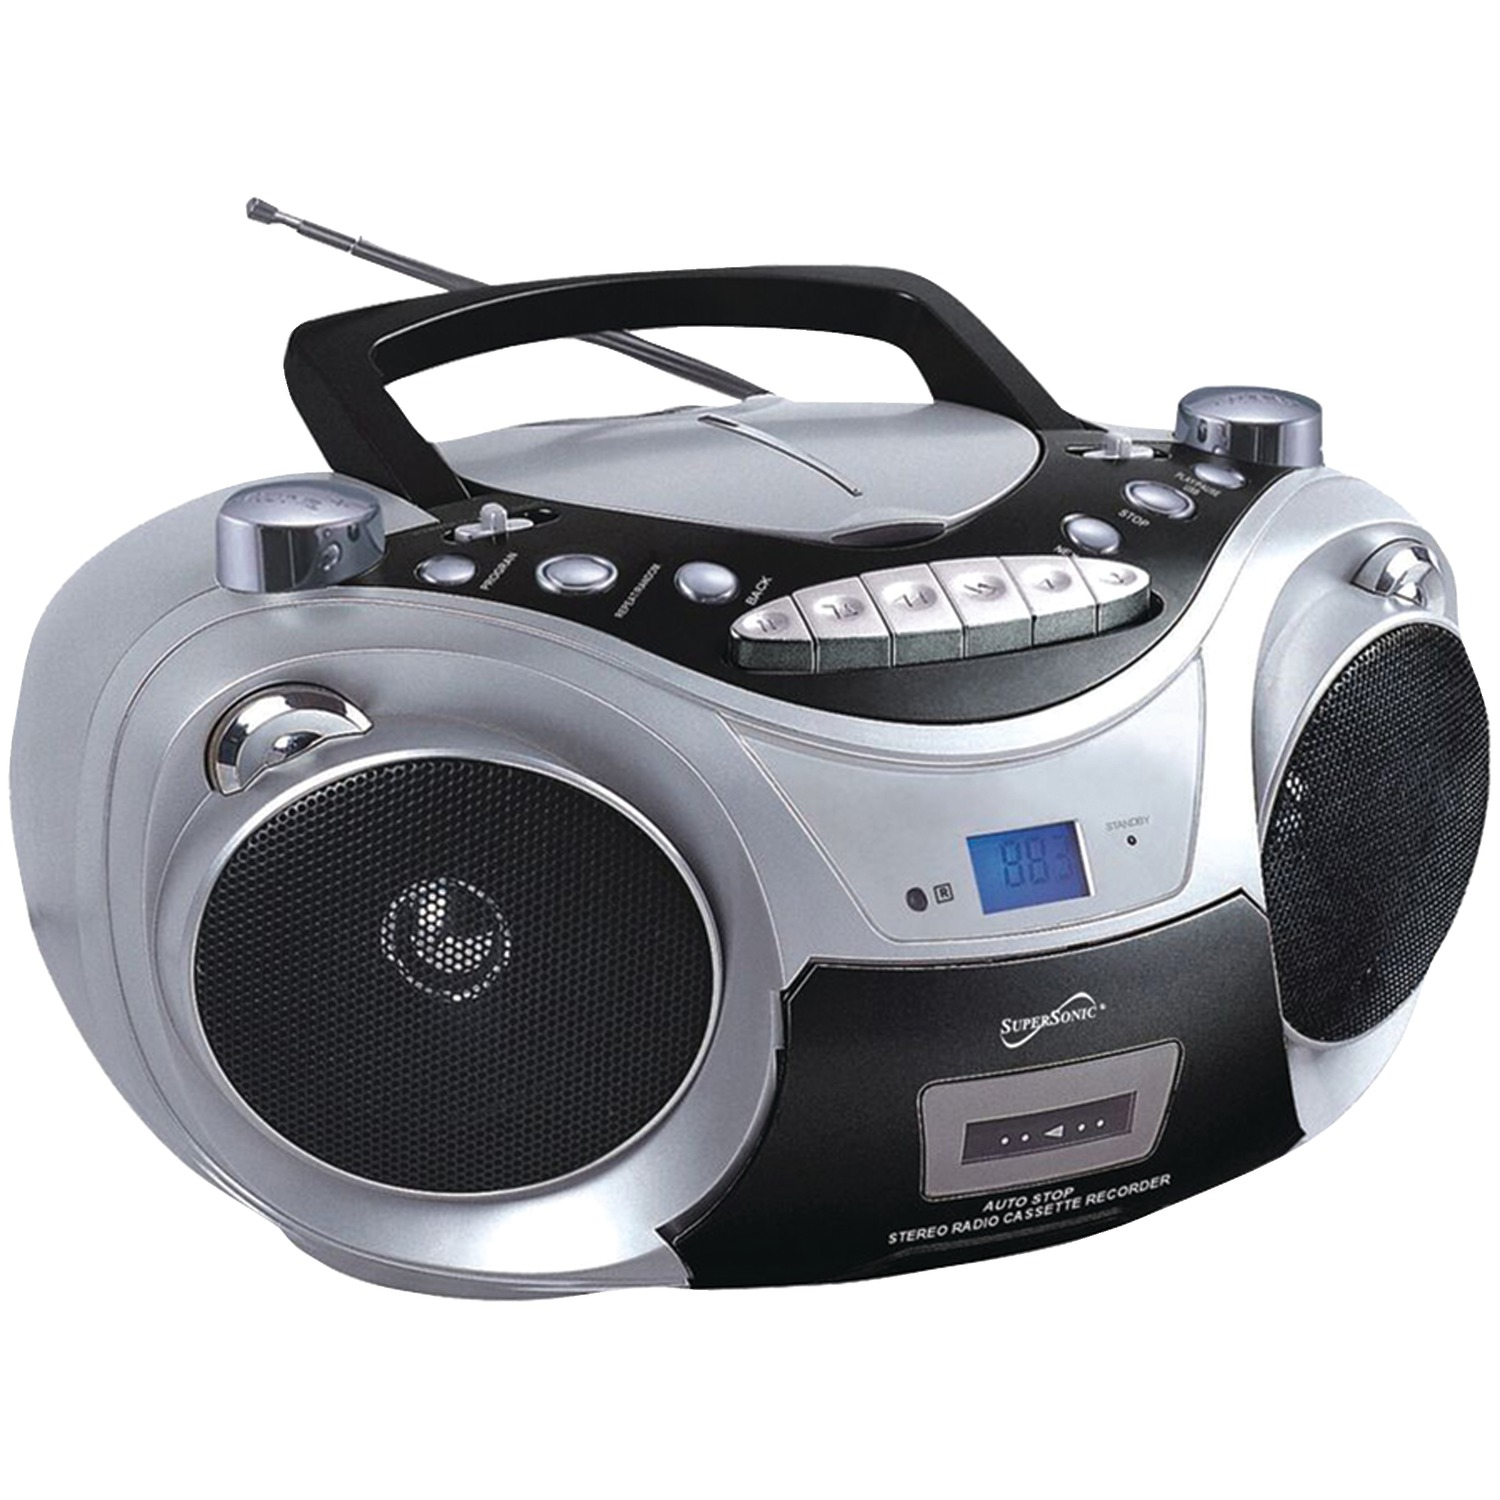 supersonic sc 709 silver portable mp3 cd player with cassette recorder am fm radio silver. Black Bedroom Furniture Sets. Home Design Ideas